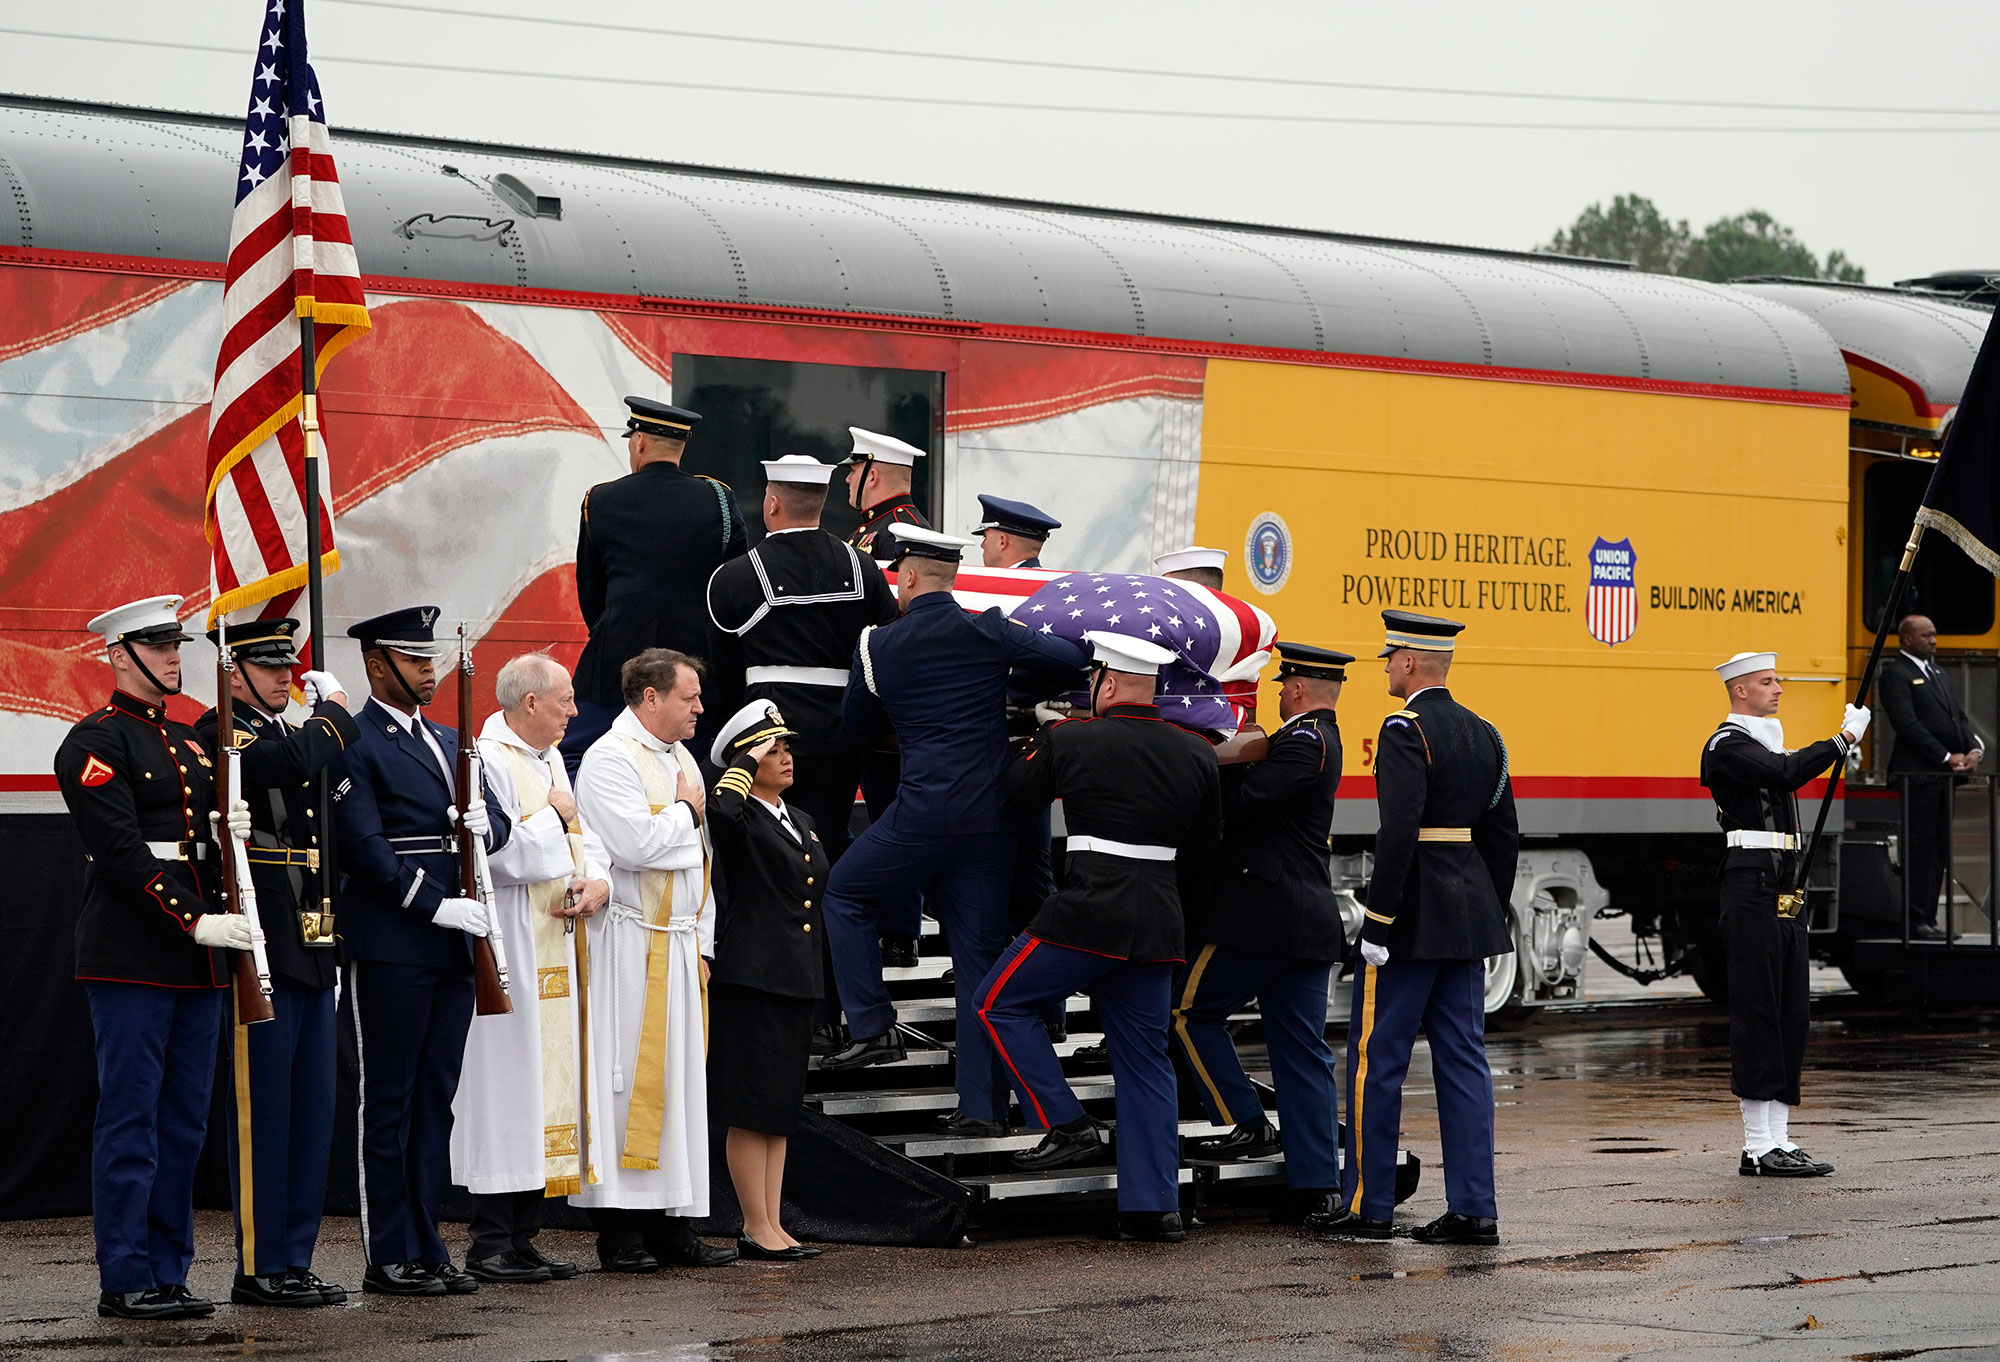 <div class='meta'><div class='origin-logo' data-origin='none'></div><span class='caption-text' data-credit='David J. Phillip, Pool/AP Photo'>The flag-draped casket of former President George H.W. Bush is carried by a joint services military honor guard Thursday, Dec. 6, 2018, in Spring, Texas.</span></div>